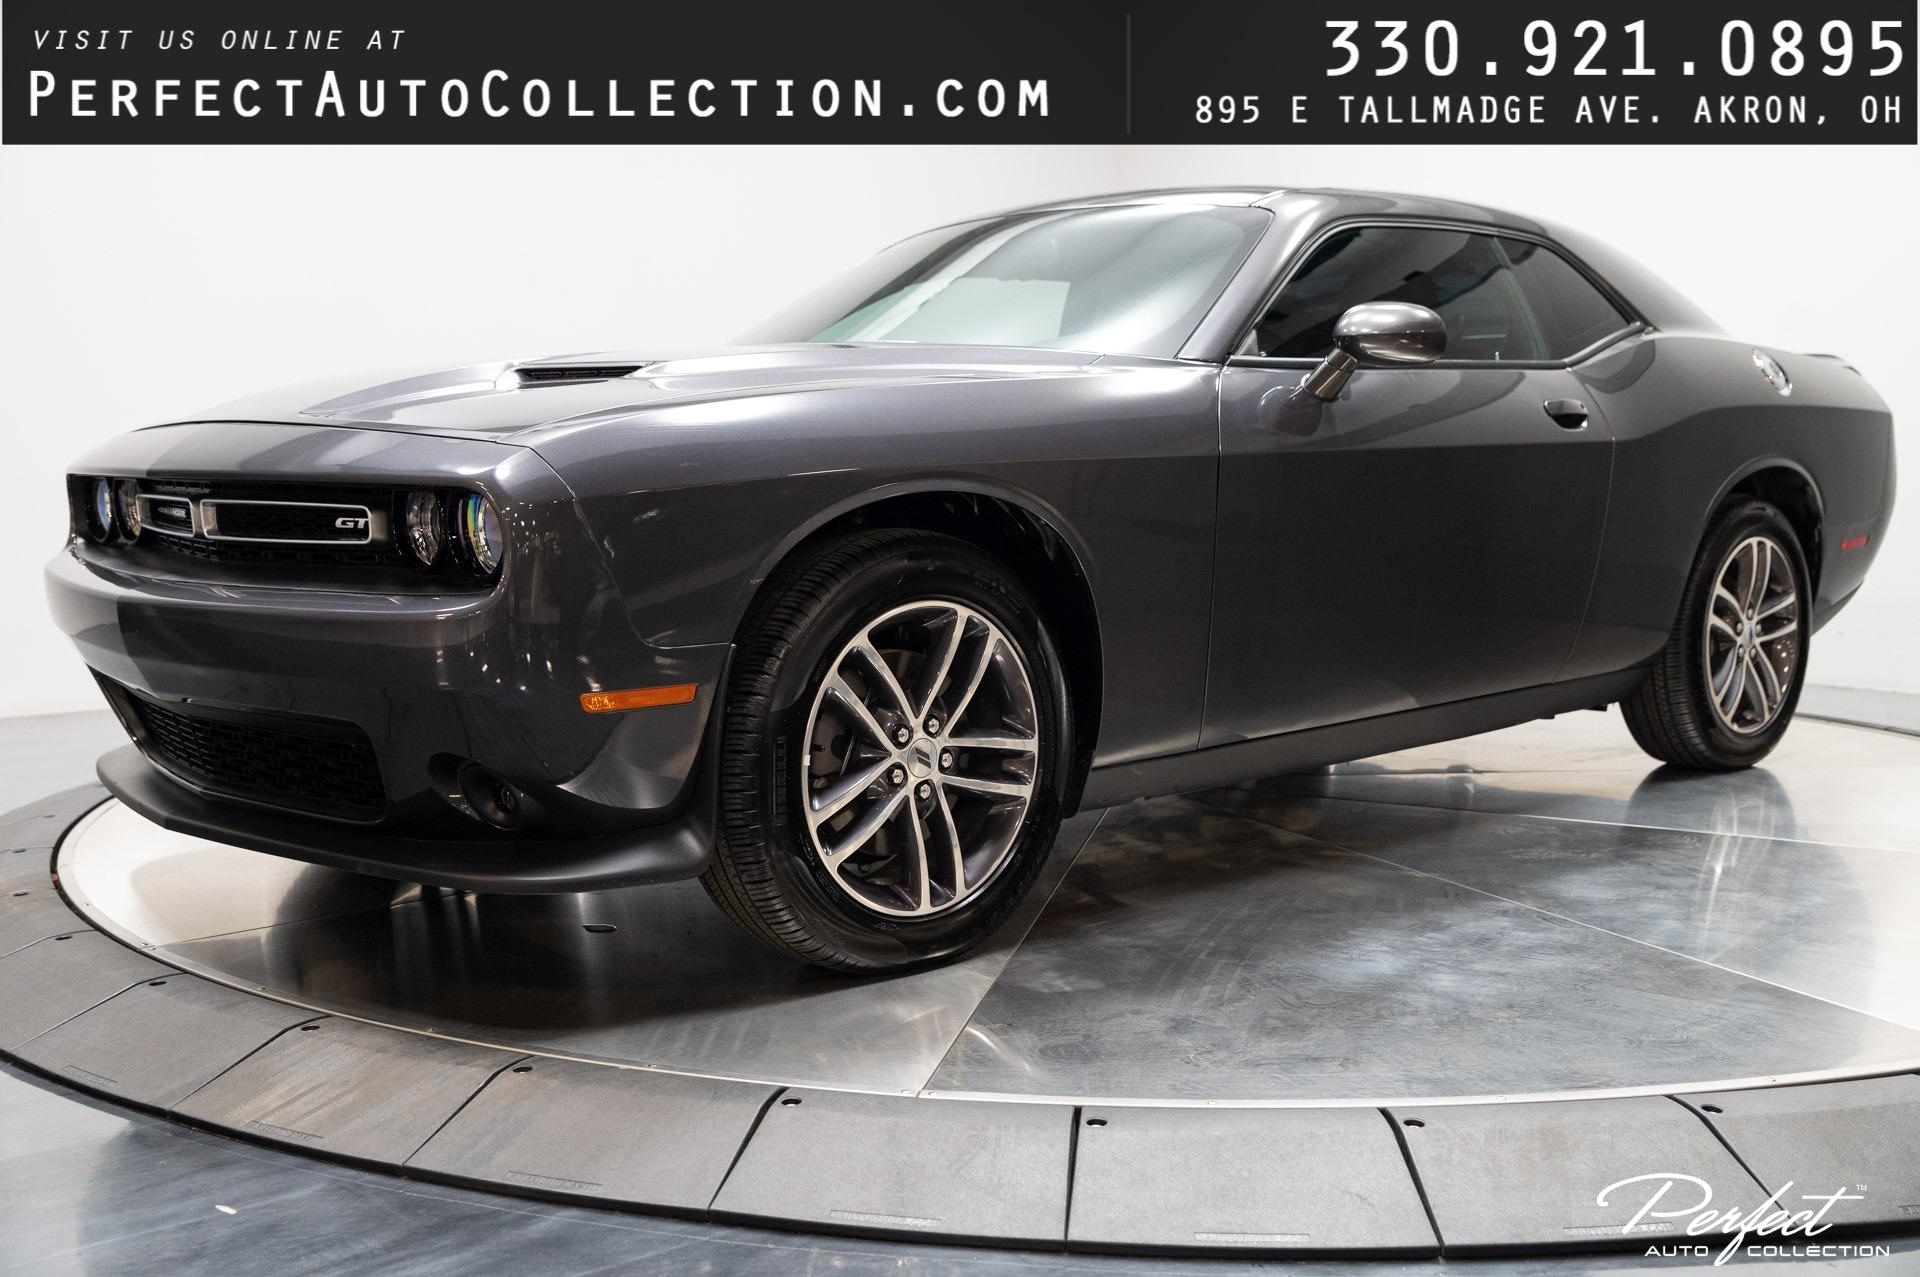 Used 2019 Dodge Challenger GT for sale $29,895 at Perfect Auto Collection in Akron OH 44310 1